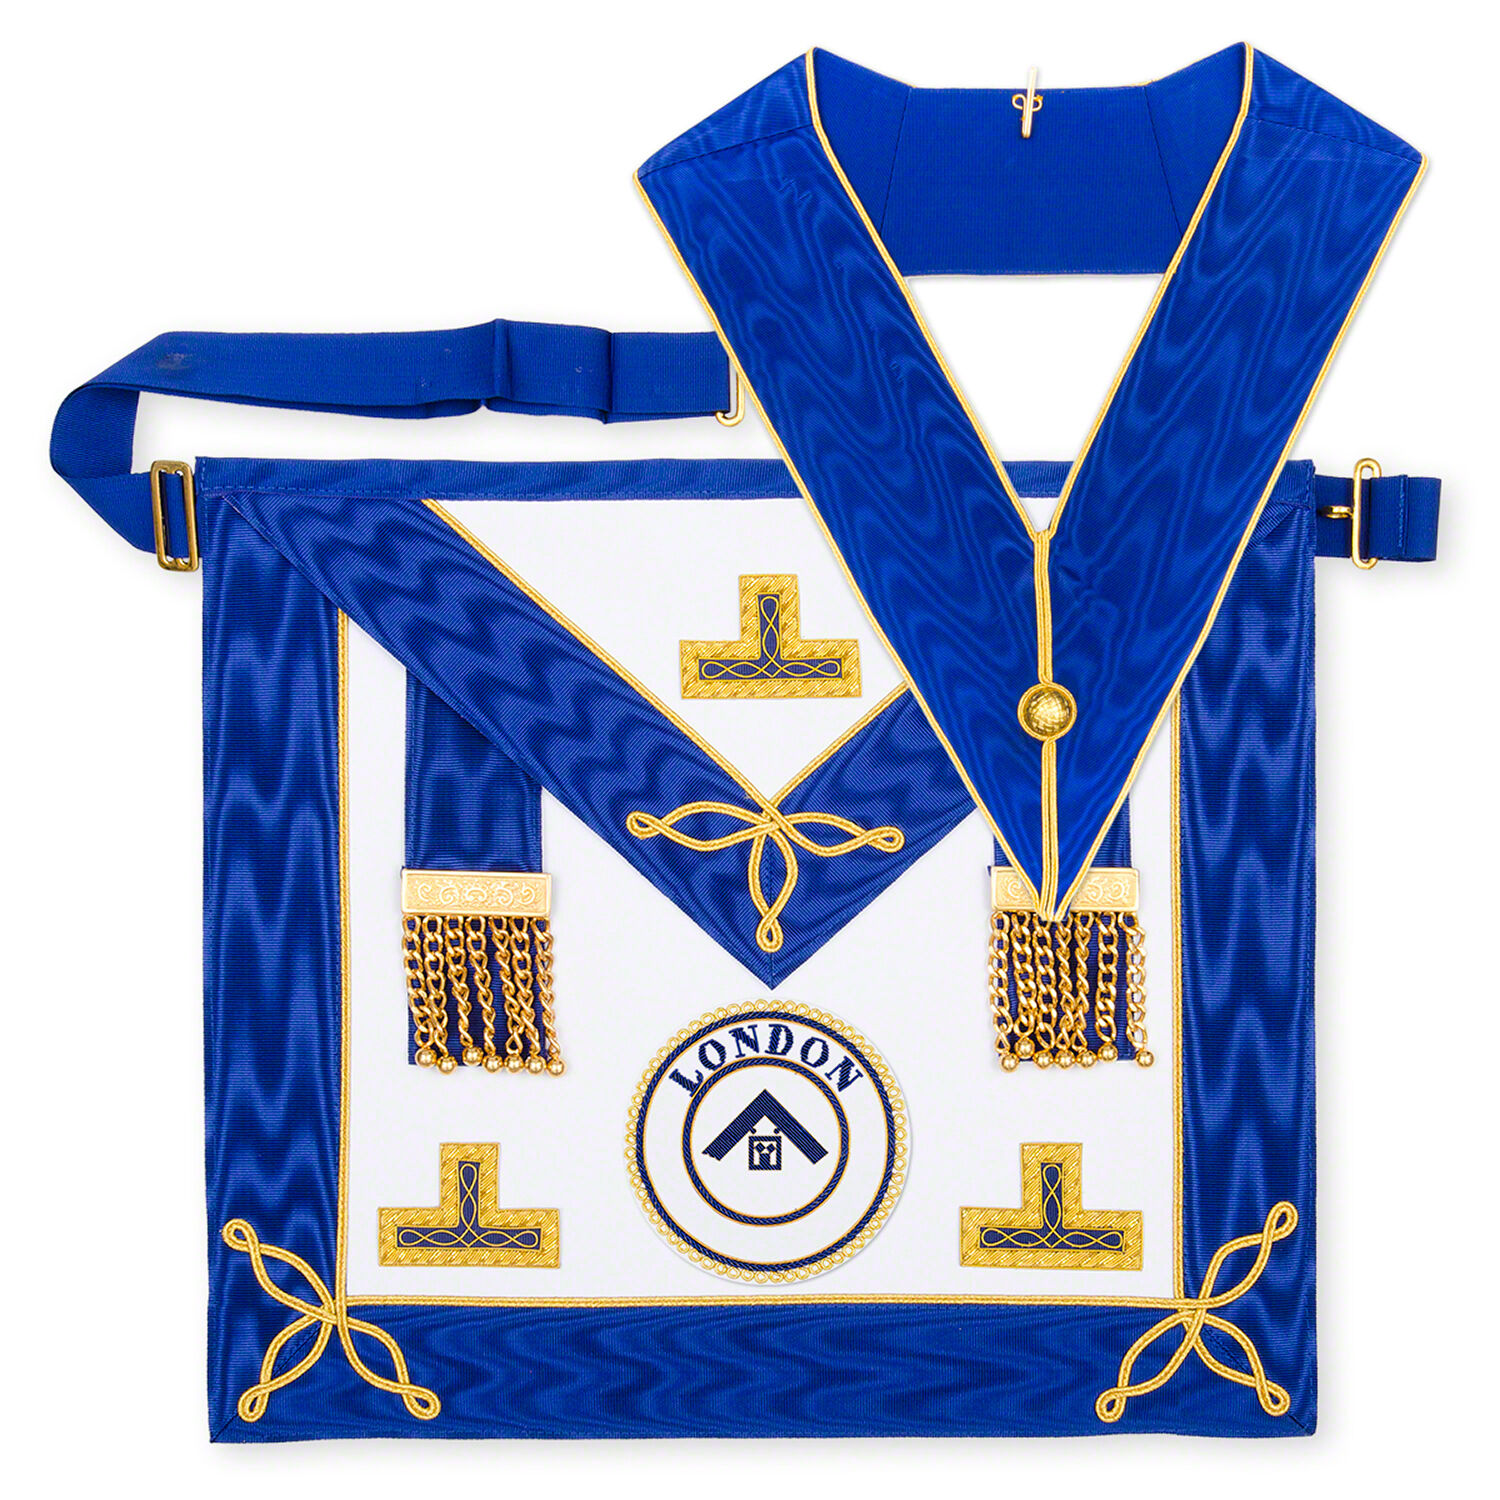 High Quality Hand Made Craft Provincial Undress Apron And Collar lambskin